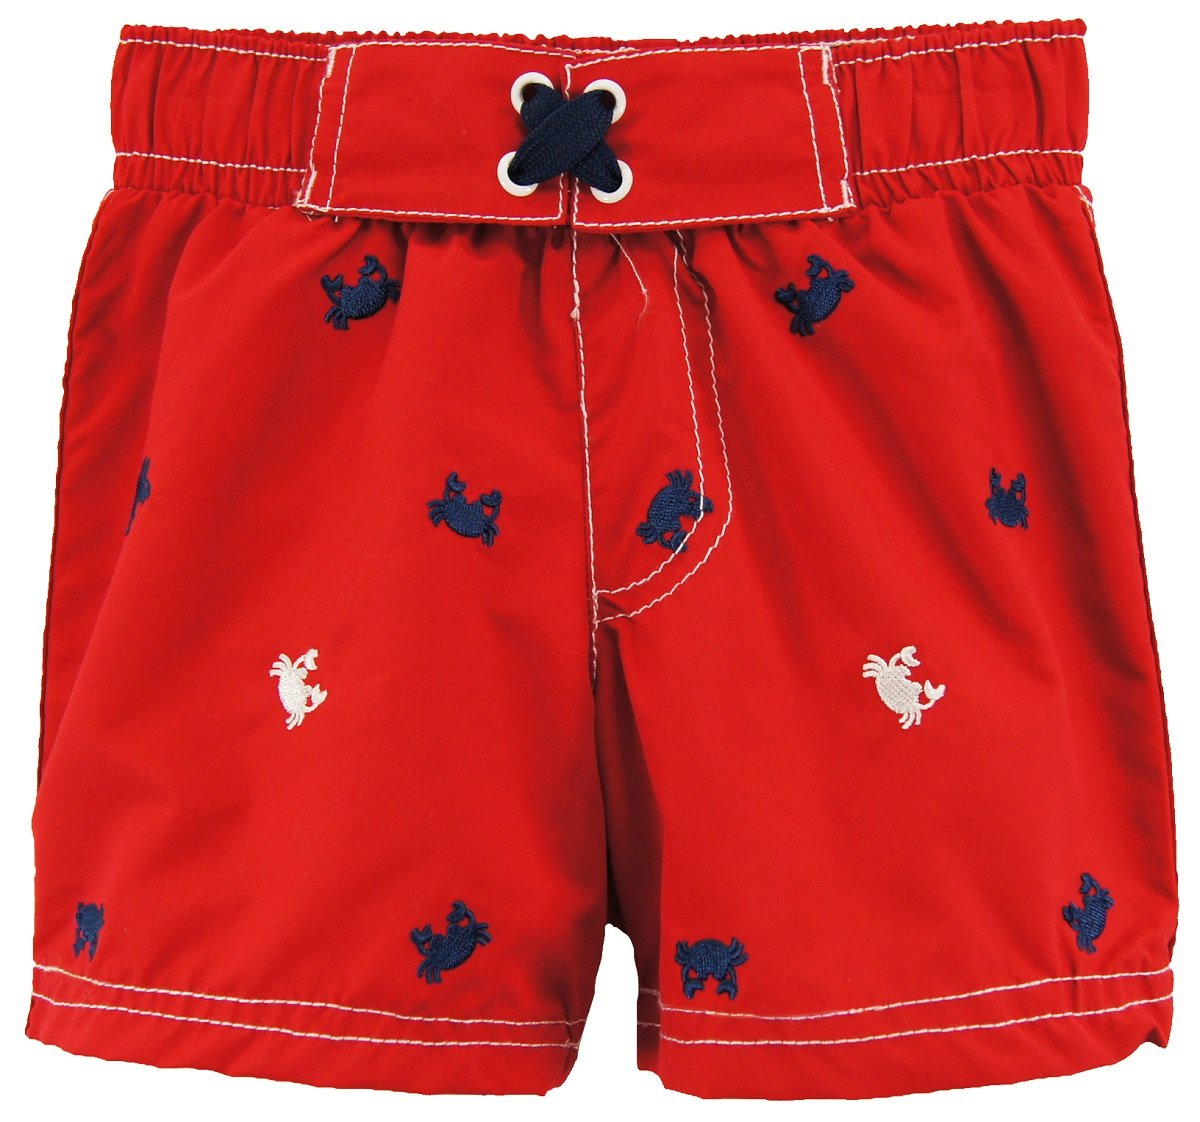 Wippette Baby Boys' Crabs Swim Trunk, Red, 12M by Wippette (Image #1)